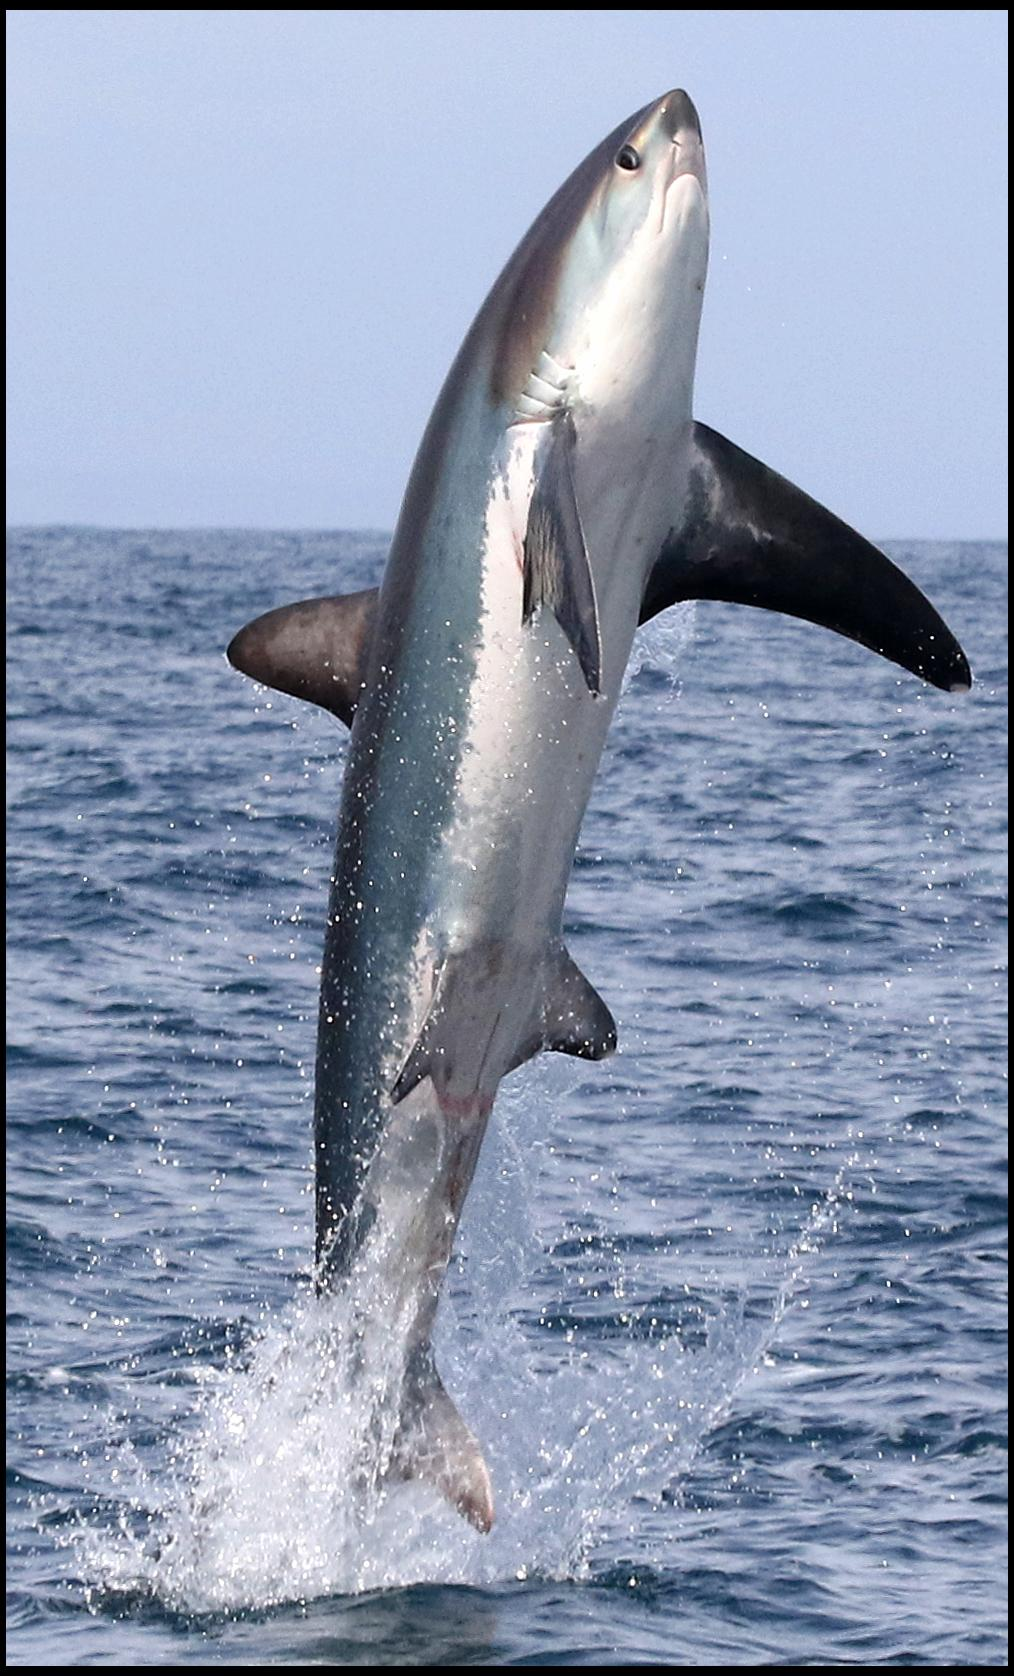 Thresher shark stuns sightseers at Lyme Bay by leaping up